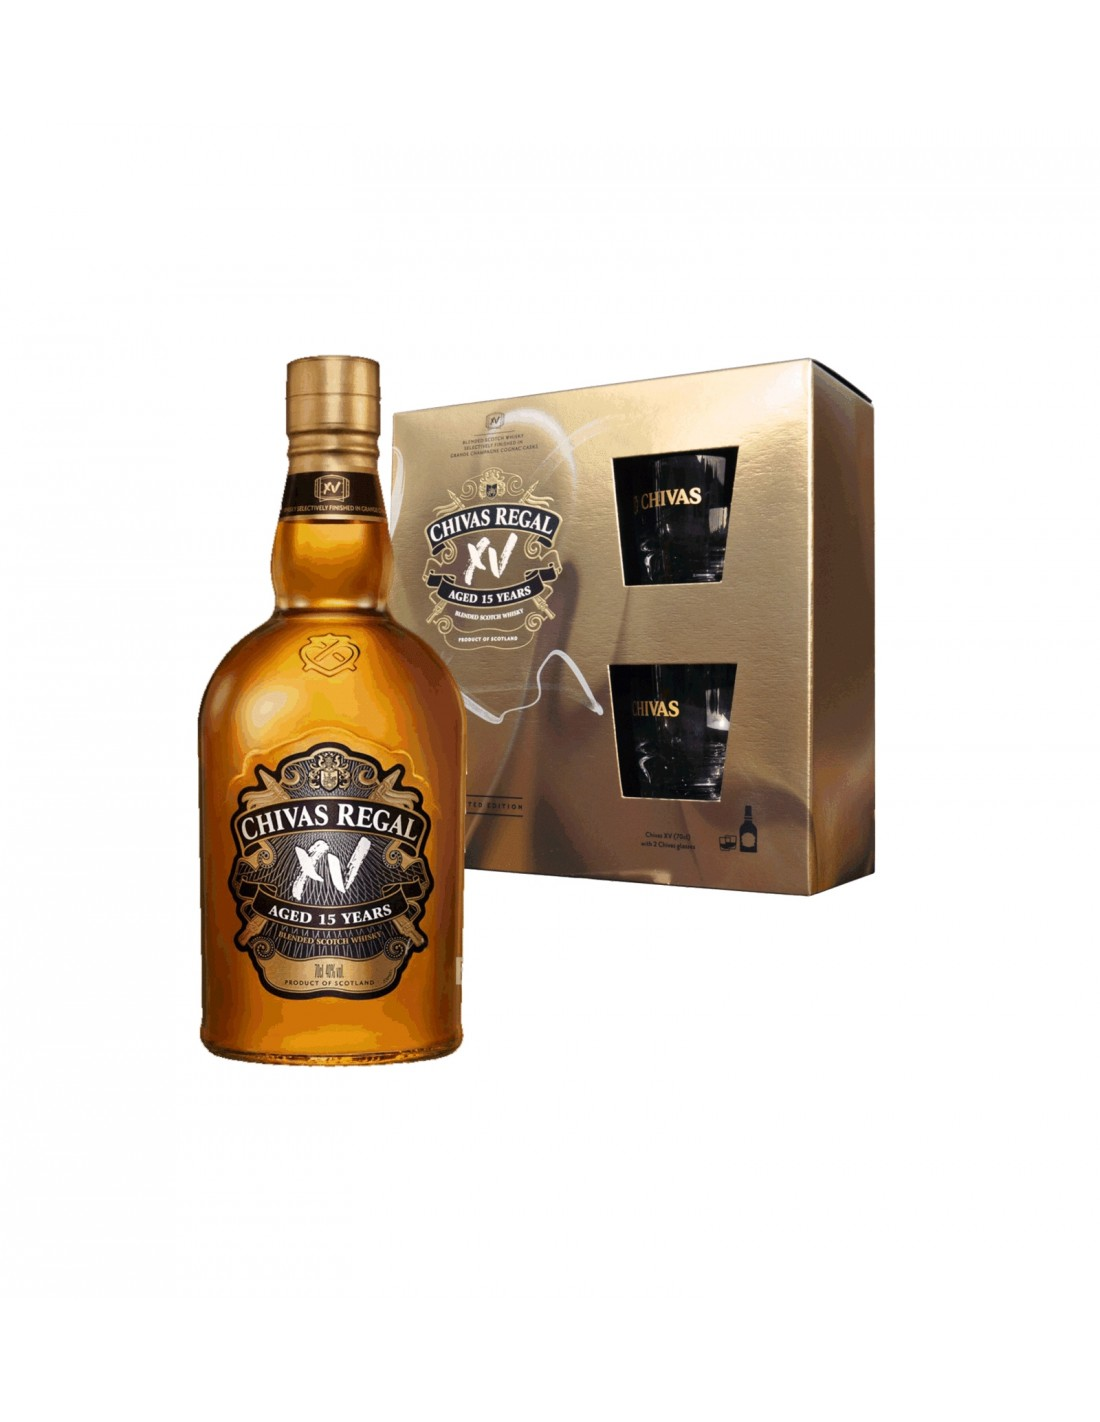 Whisky Chivas Regal + 2 Pahare, 15 ani, 40% alc., 0.7L, Scotia